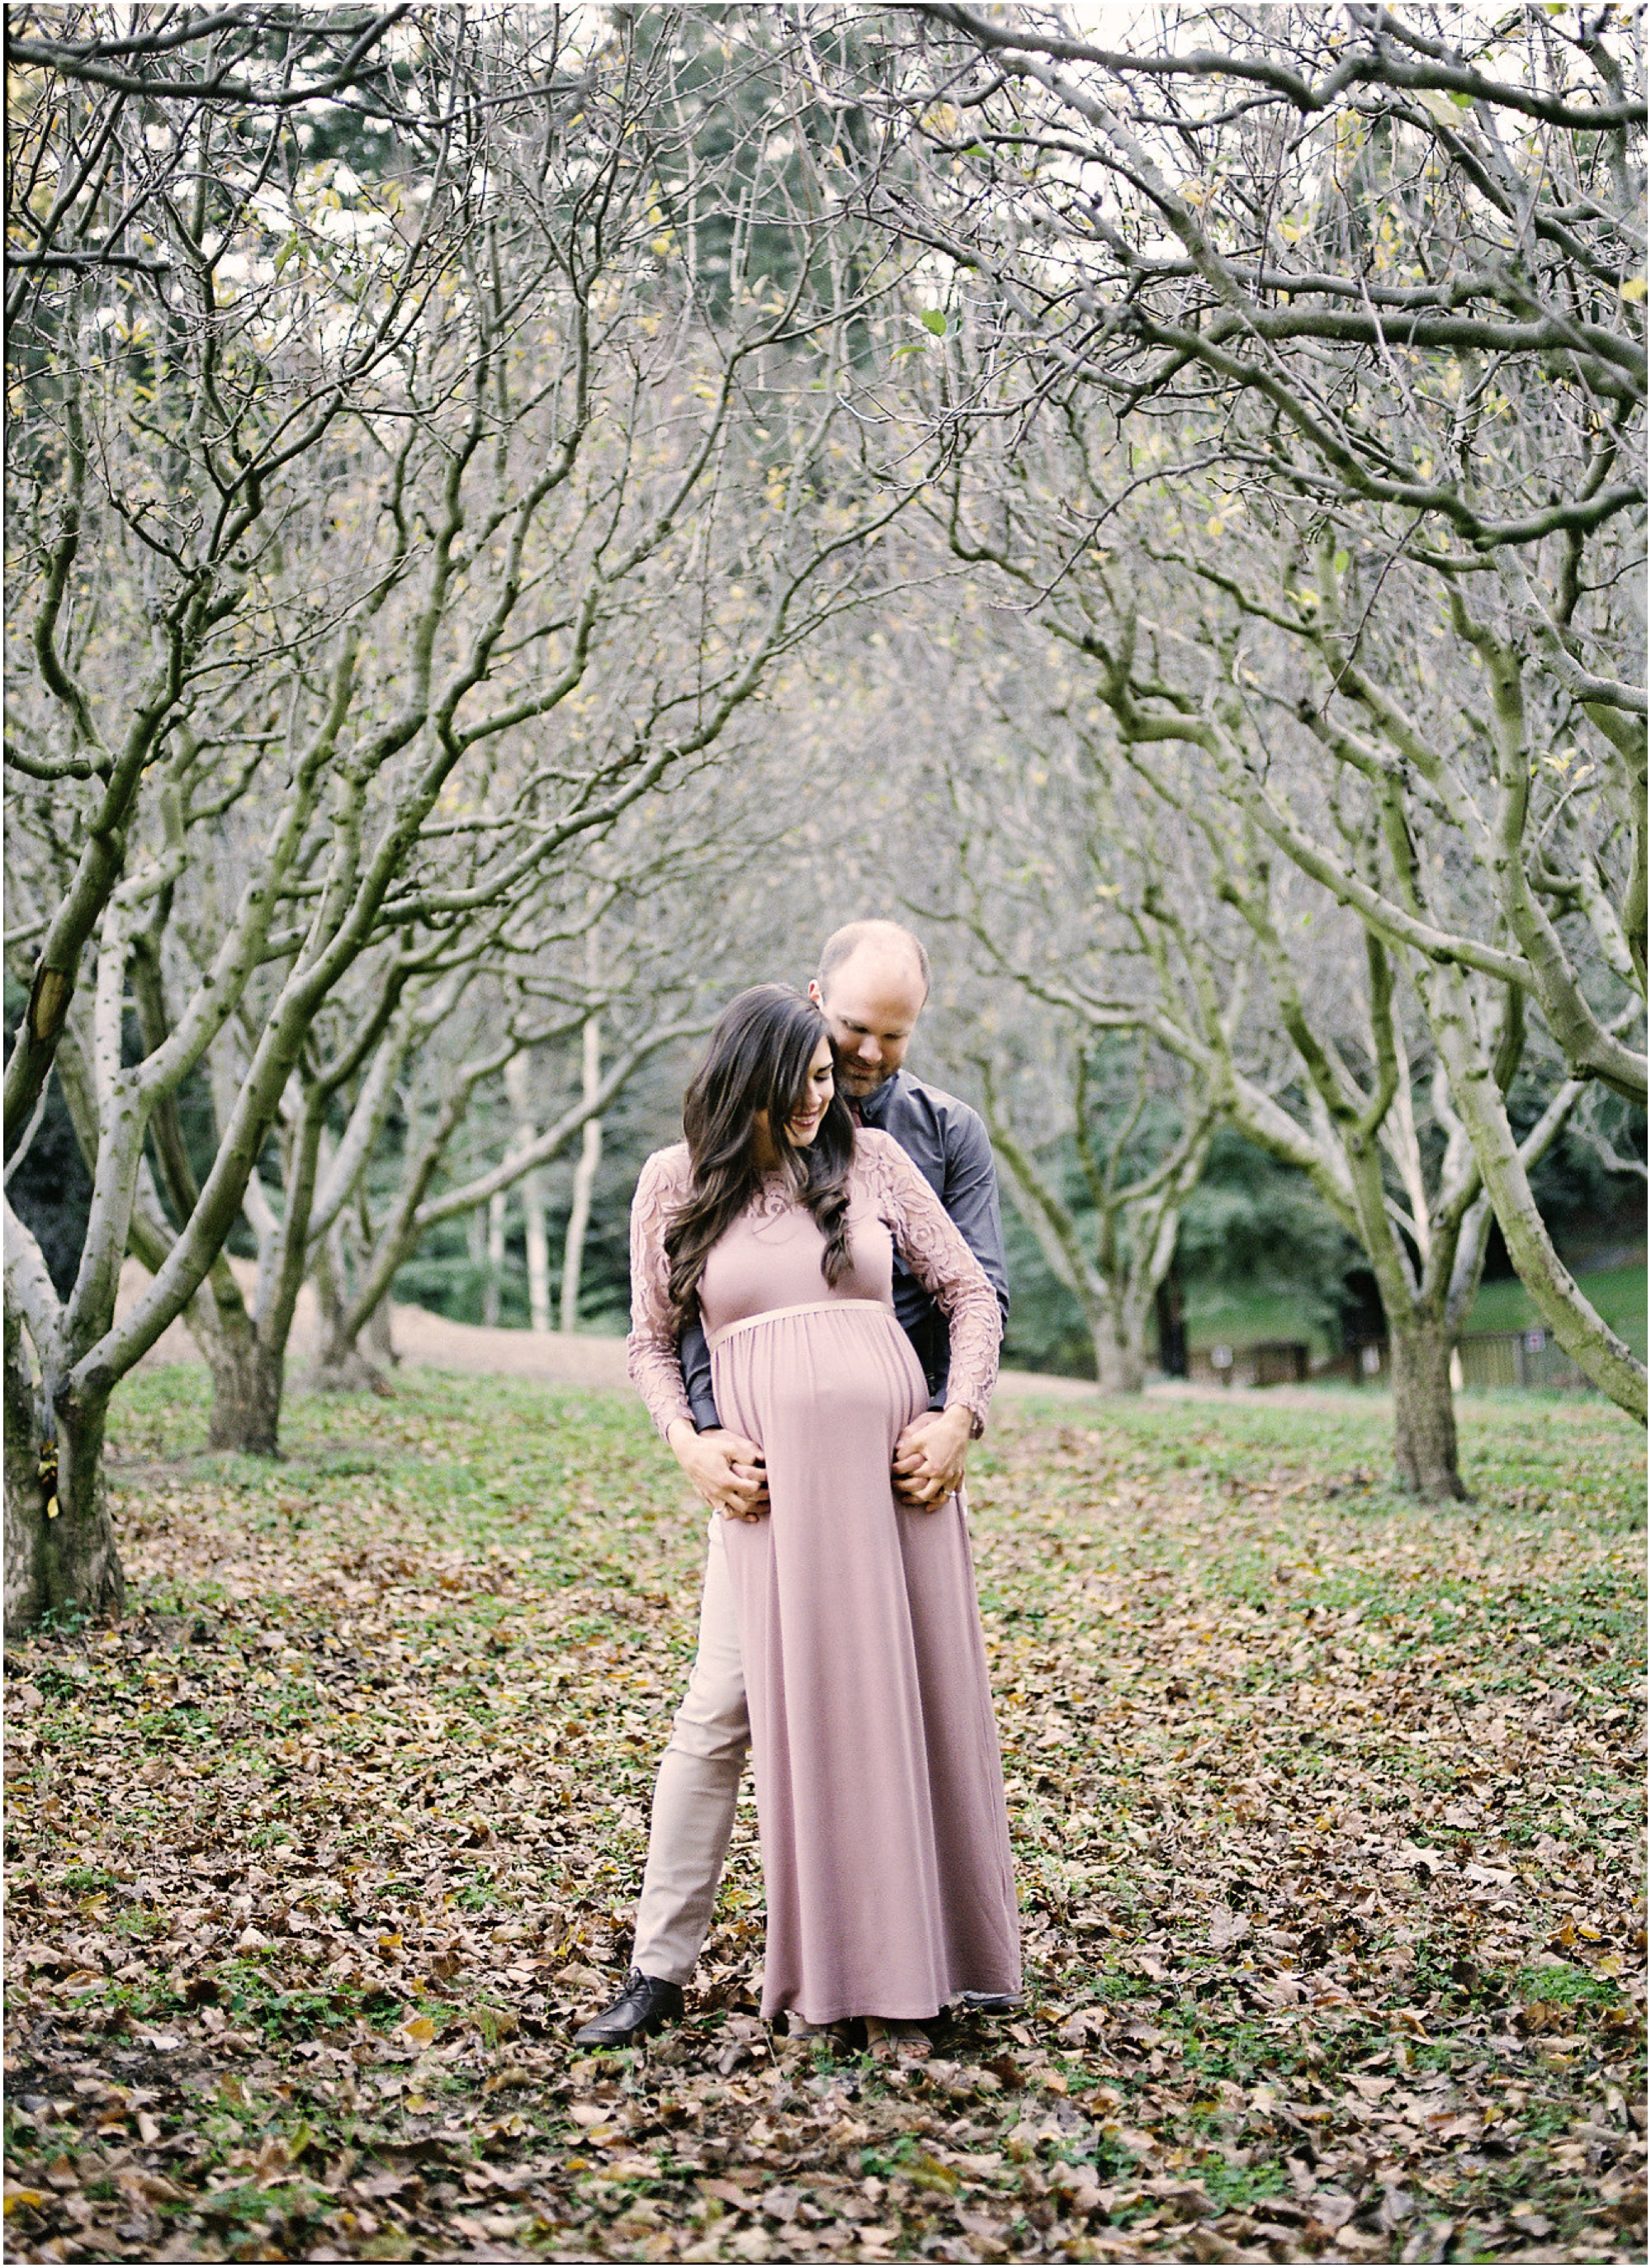 Maternity photos.  Briana Calderon Photography based in Tacoma, WA_0612.jpg